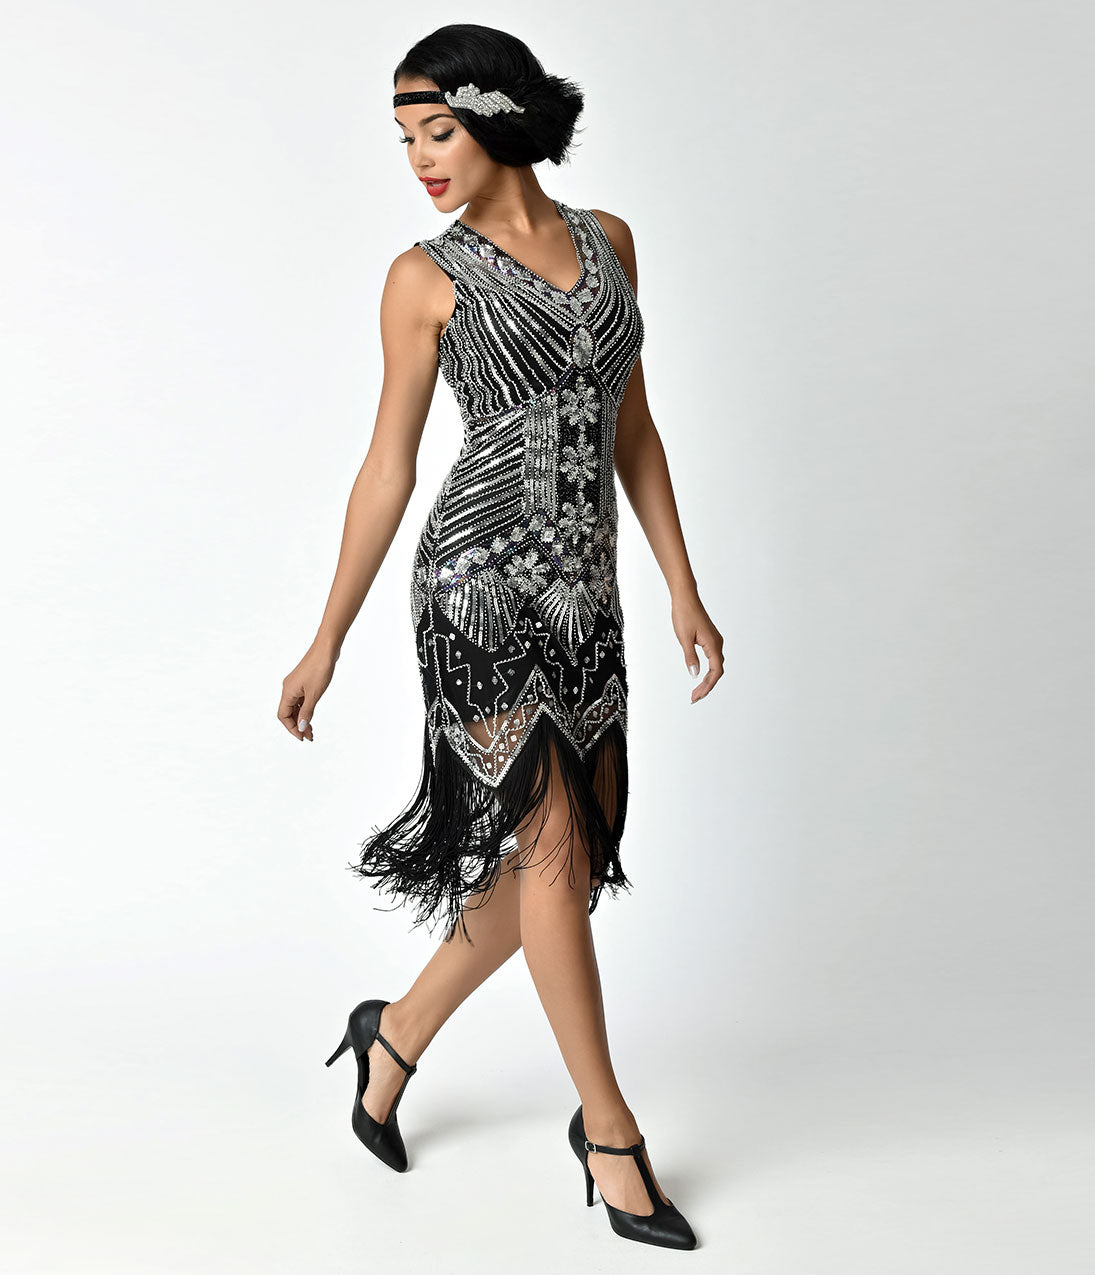 Vintage New Years Eve Dresses – Vintage Inspired Styles Unique Vintage 1920S Deco Silver  Black Veronique Fringe Flapper Dress $98.00 AT vintagedancer.com